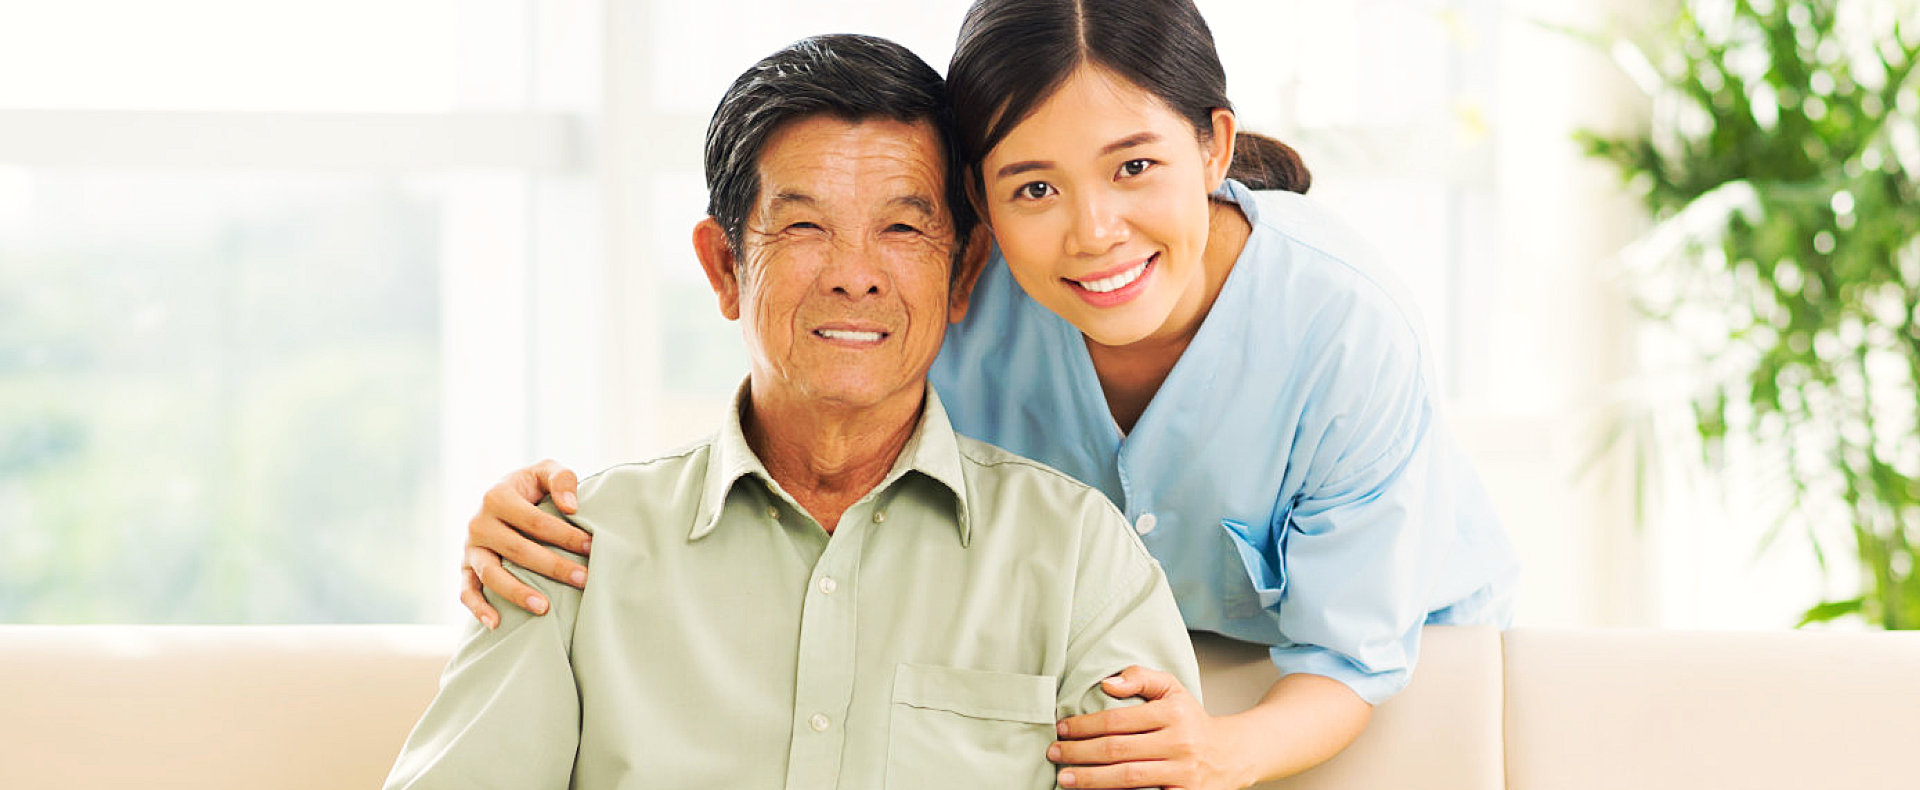 young lady caregiver and old man smiling